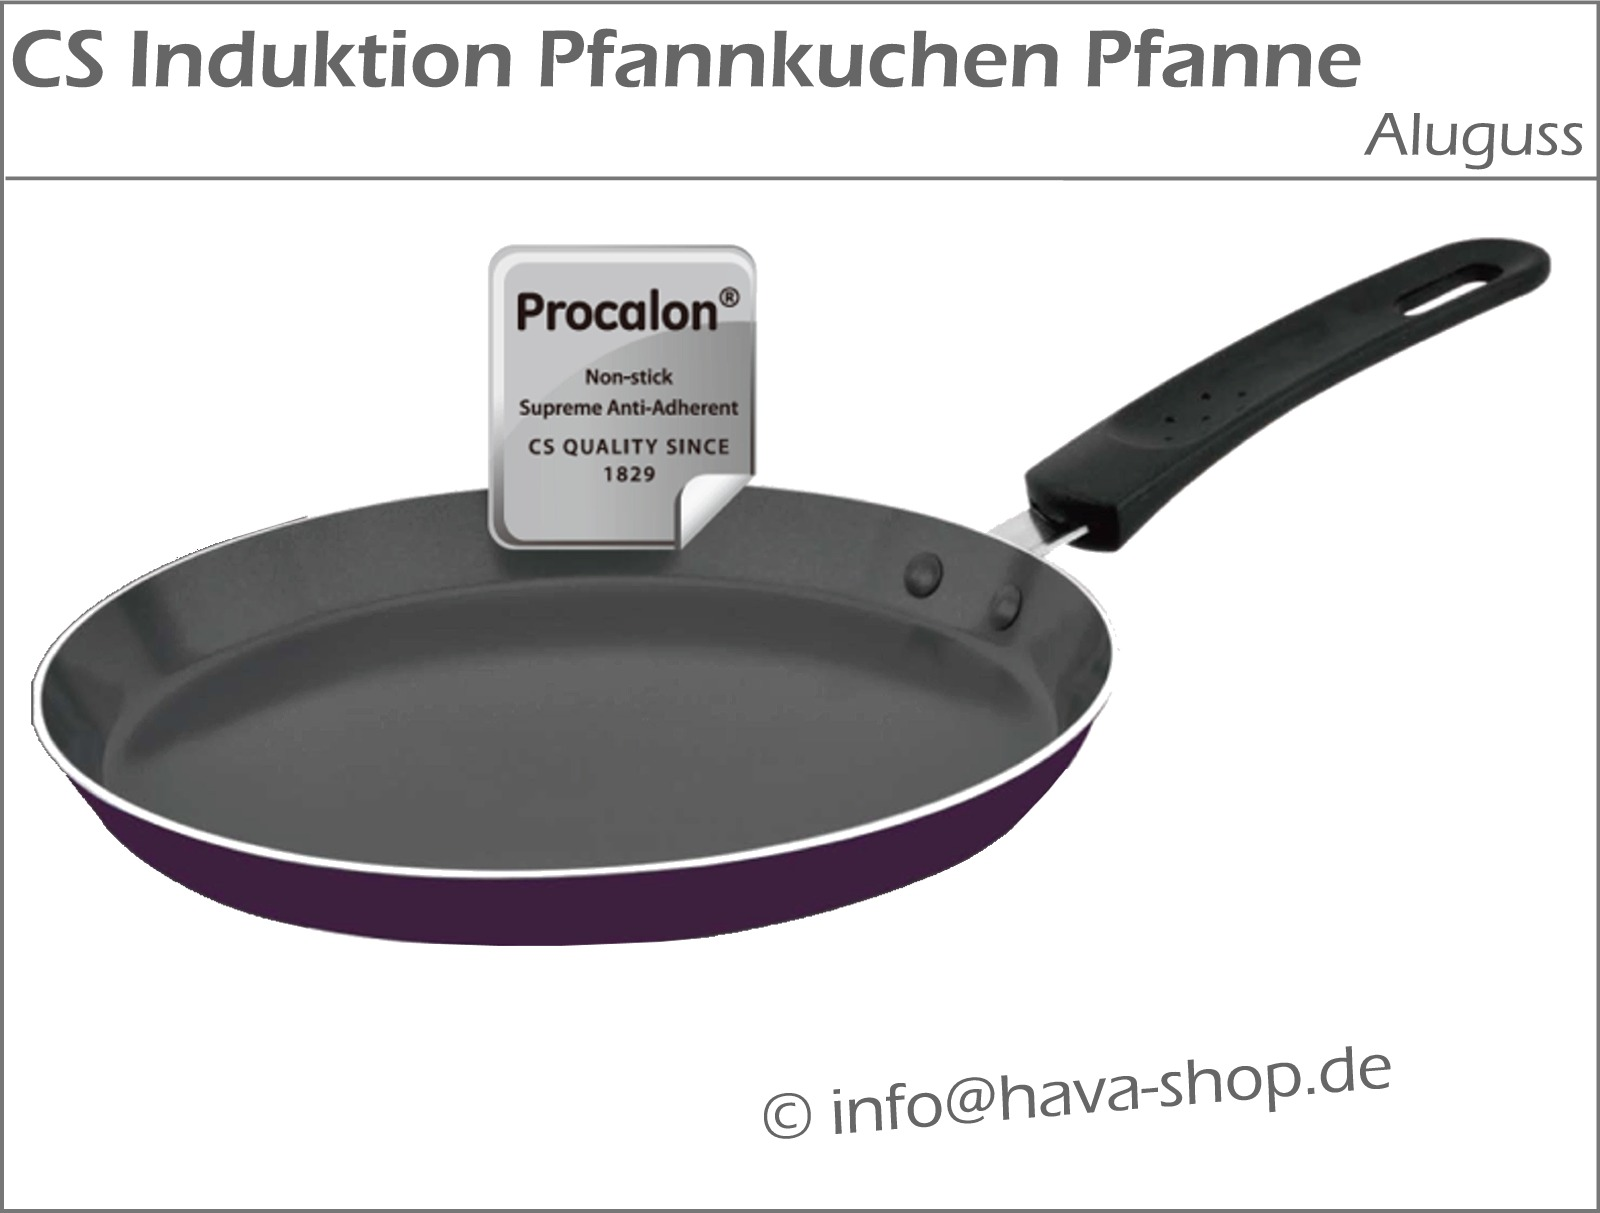 antihaft induktion pfannkuchen pfanne aluguss edelstahl 24 cm pancake maker pan. Black Bedroom Furniture Sets. Home Design Ideas